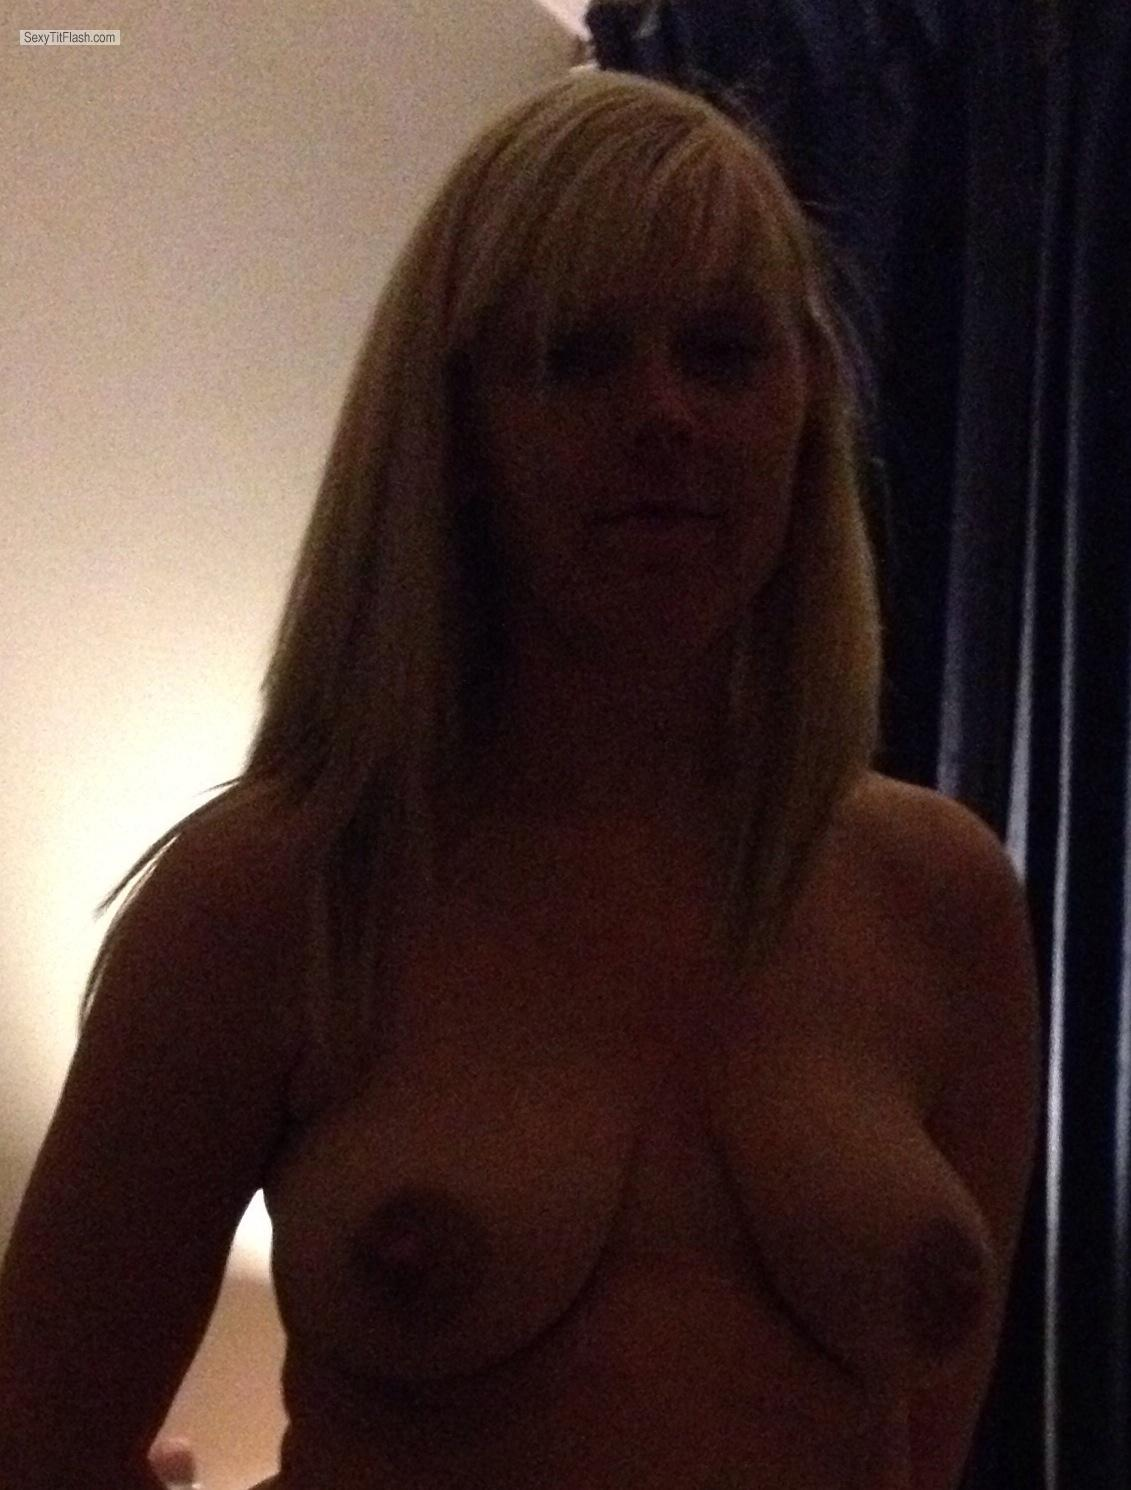 Medium Tits Topless UKdaringMILF